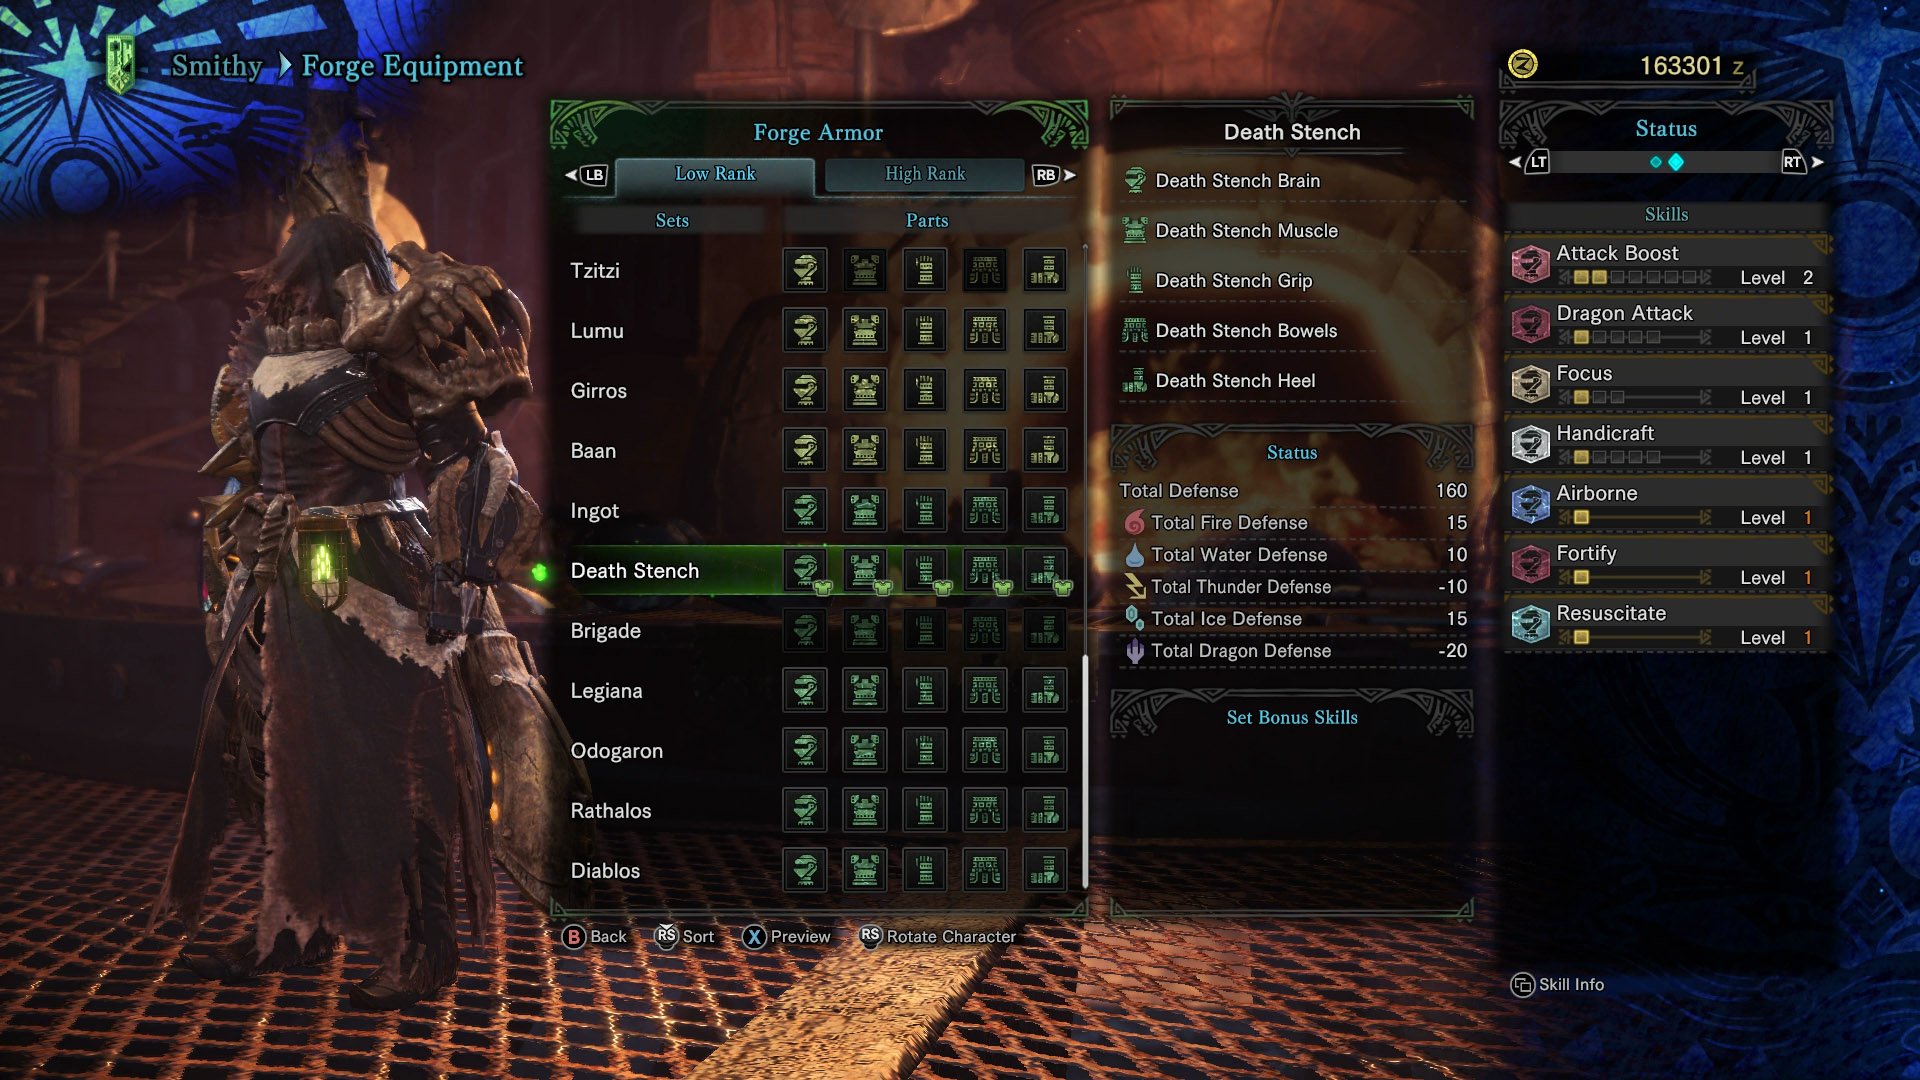 How to Get Death Stench Armor in Monster Hunter World | Shacknews